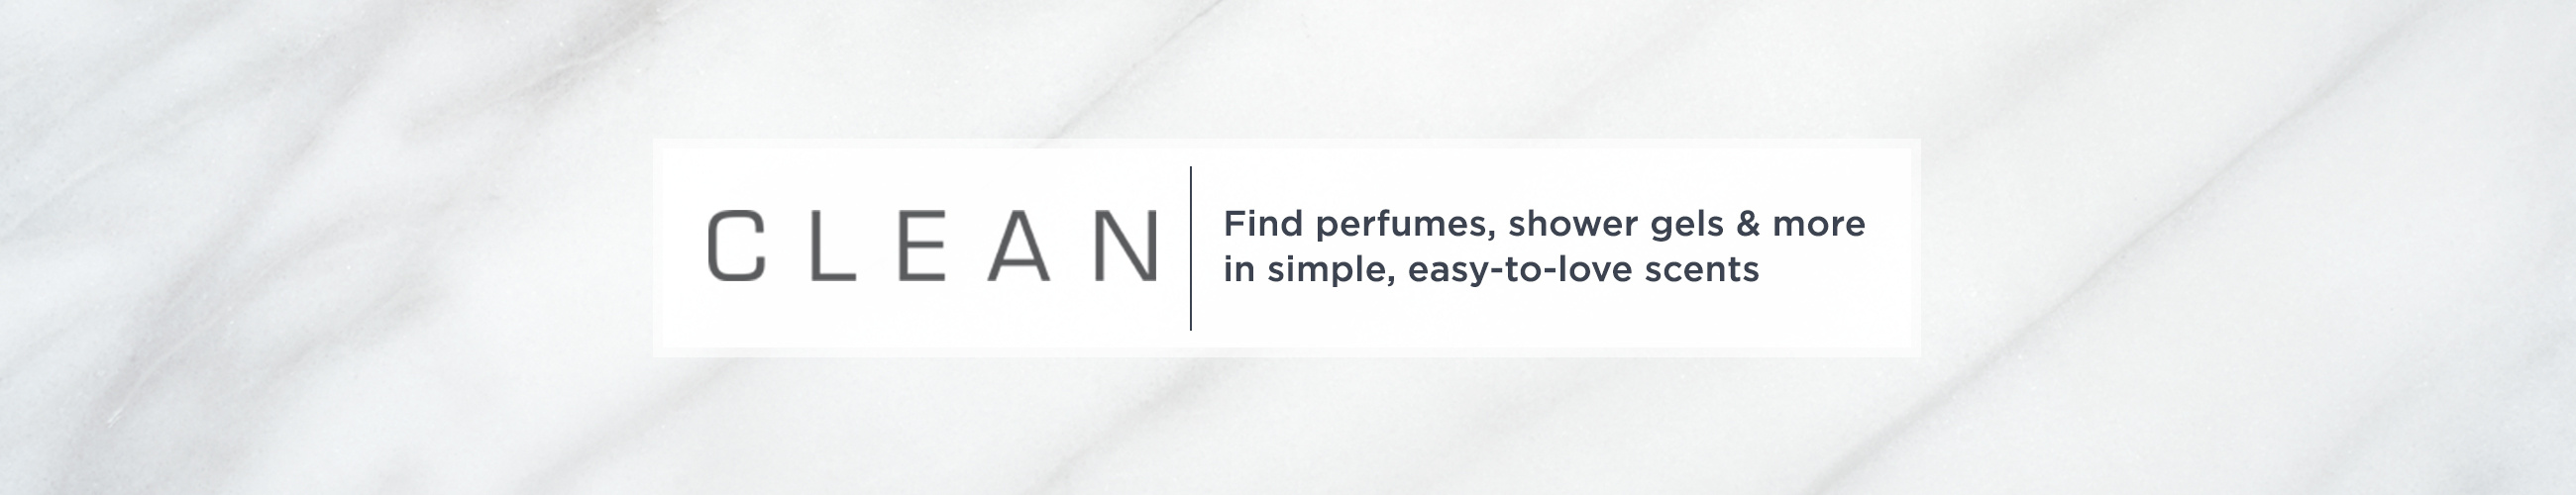 CLEAN,  Find perfumes, shower gels & more in simple, easy-to-love scents